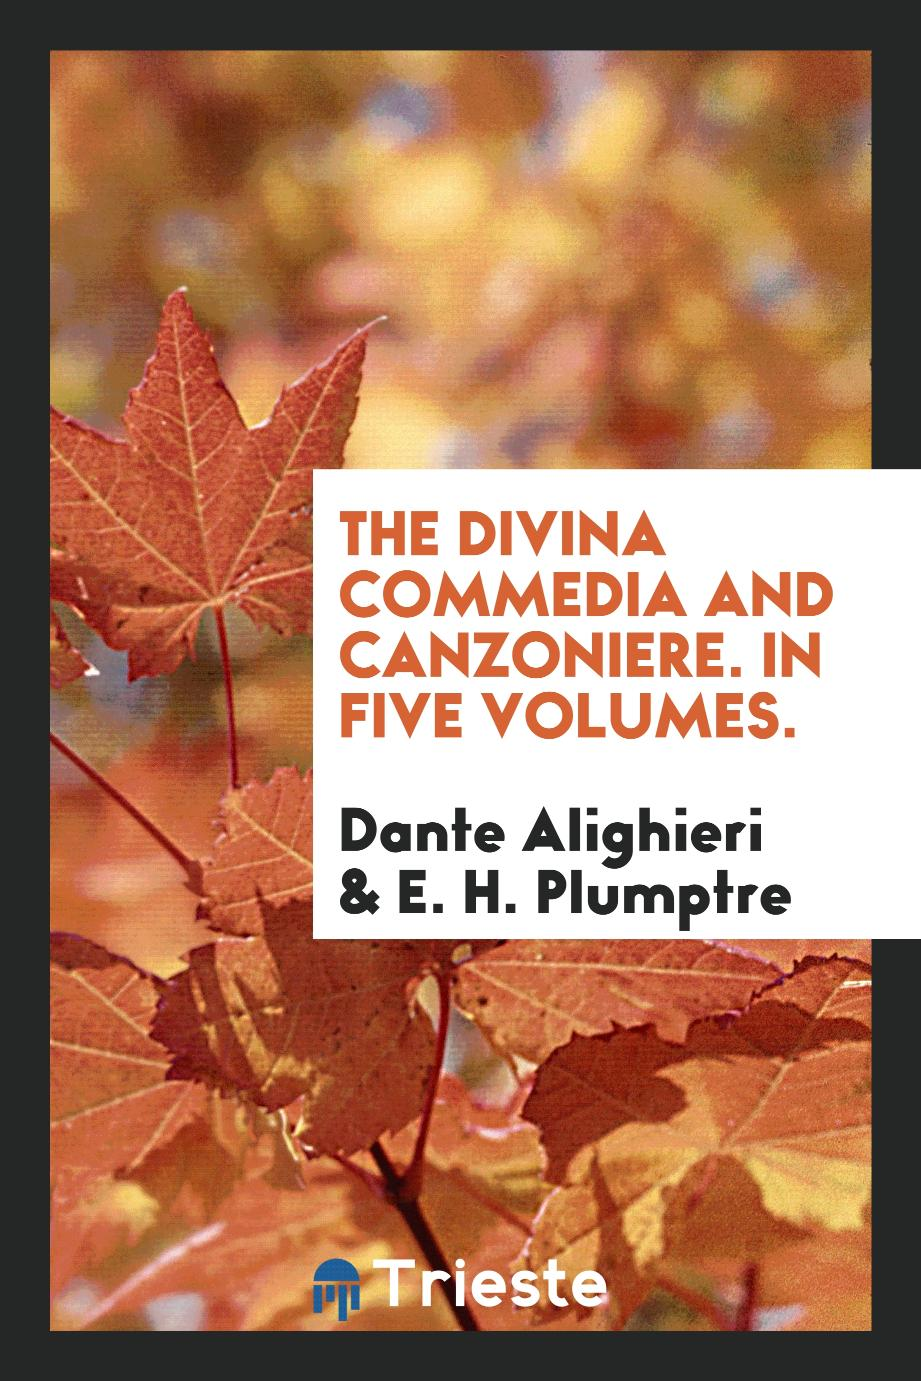 The Divina commedia and Canzoniere. In five volumes.